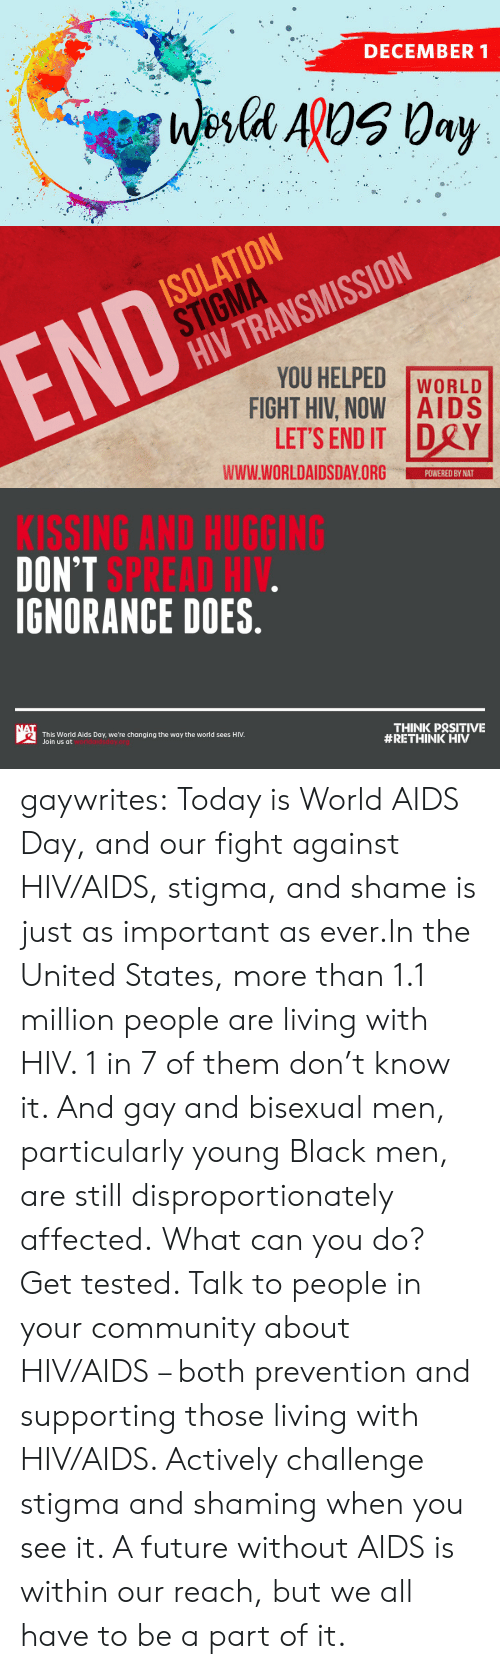 Statistics: DECEMBER 1  Wesla ApOS 0ay   ISOLATION  STIGMA  HIV TRANSMISSION  END  YOU HELPED  FIGHT HIV, NOW AIDS  LET'S END IT DRY  WORLD  www.WORLDAIDSDAY.ORG  POWERED BY NAT   KISSING AND HUGGING  DON'T SPREAD HIV.  IGNORANCE DOES.  NAT  THINK PRSITIVE  #RETHINK HIV  This World Aids Day, we're changing the way the world sees HIV.  Join us at gaywrites:  Today is World AIDS Day, and our fight against HIV/AIDS, stigma, and shame is just as important as ever.In the United States, more than 1.1 million people are living with HIV. 1 in 7 of them don't know it. And gay and bisexual men, particularly young Black men, are still disproportionately affected. What can you do? Get tested. Talk to people in your community about HIV/AIDS – both prevention and supporting those living with HIV/AIDS. Actively challenge stigma and shaming when you see it. A future without AIDS is within our reach, but we all have to be a part of it.